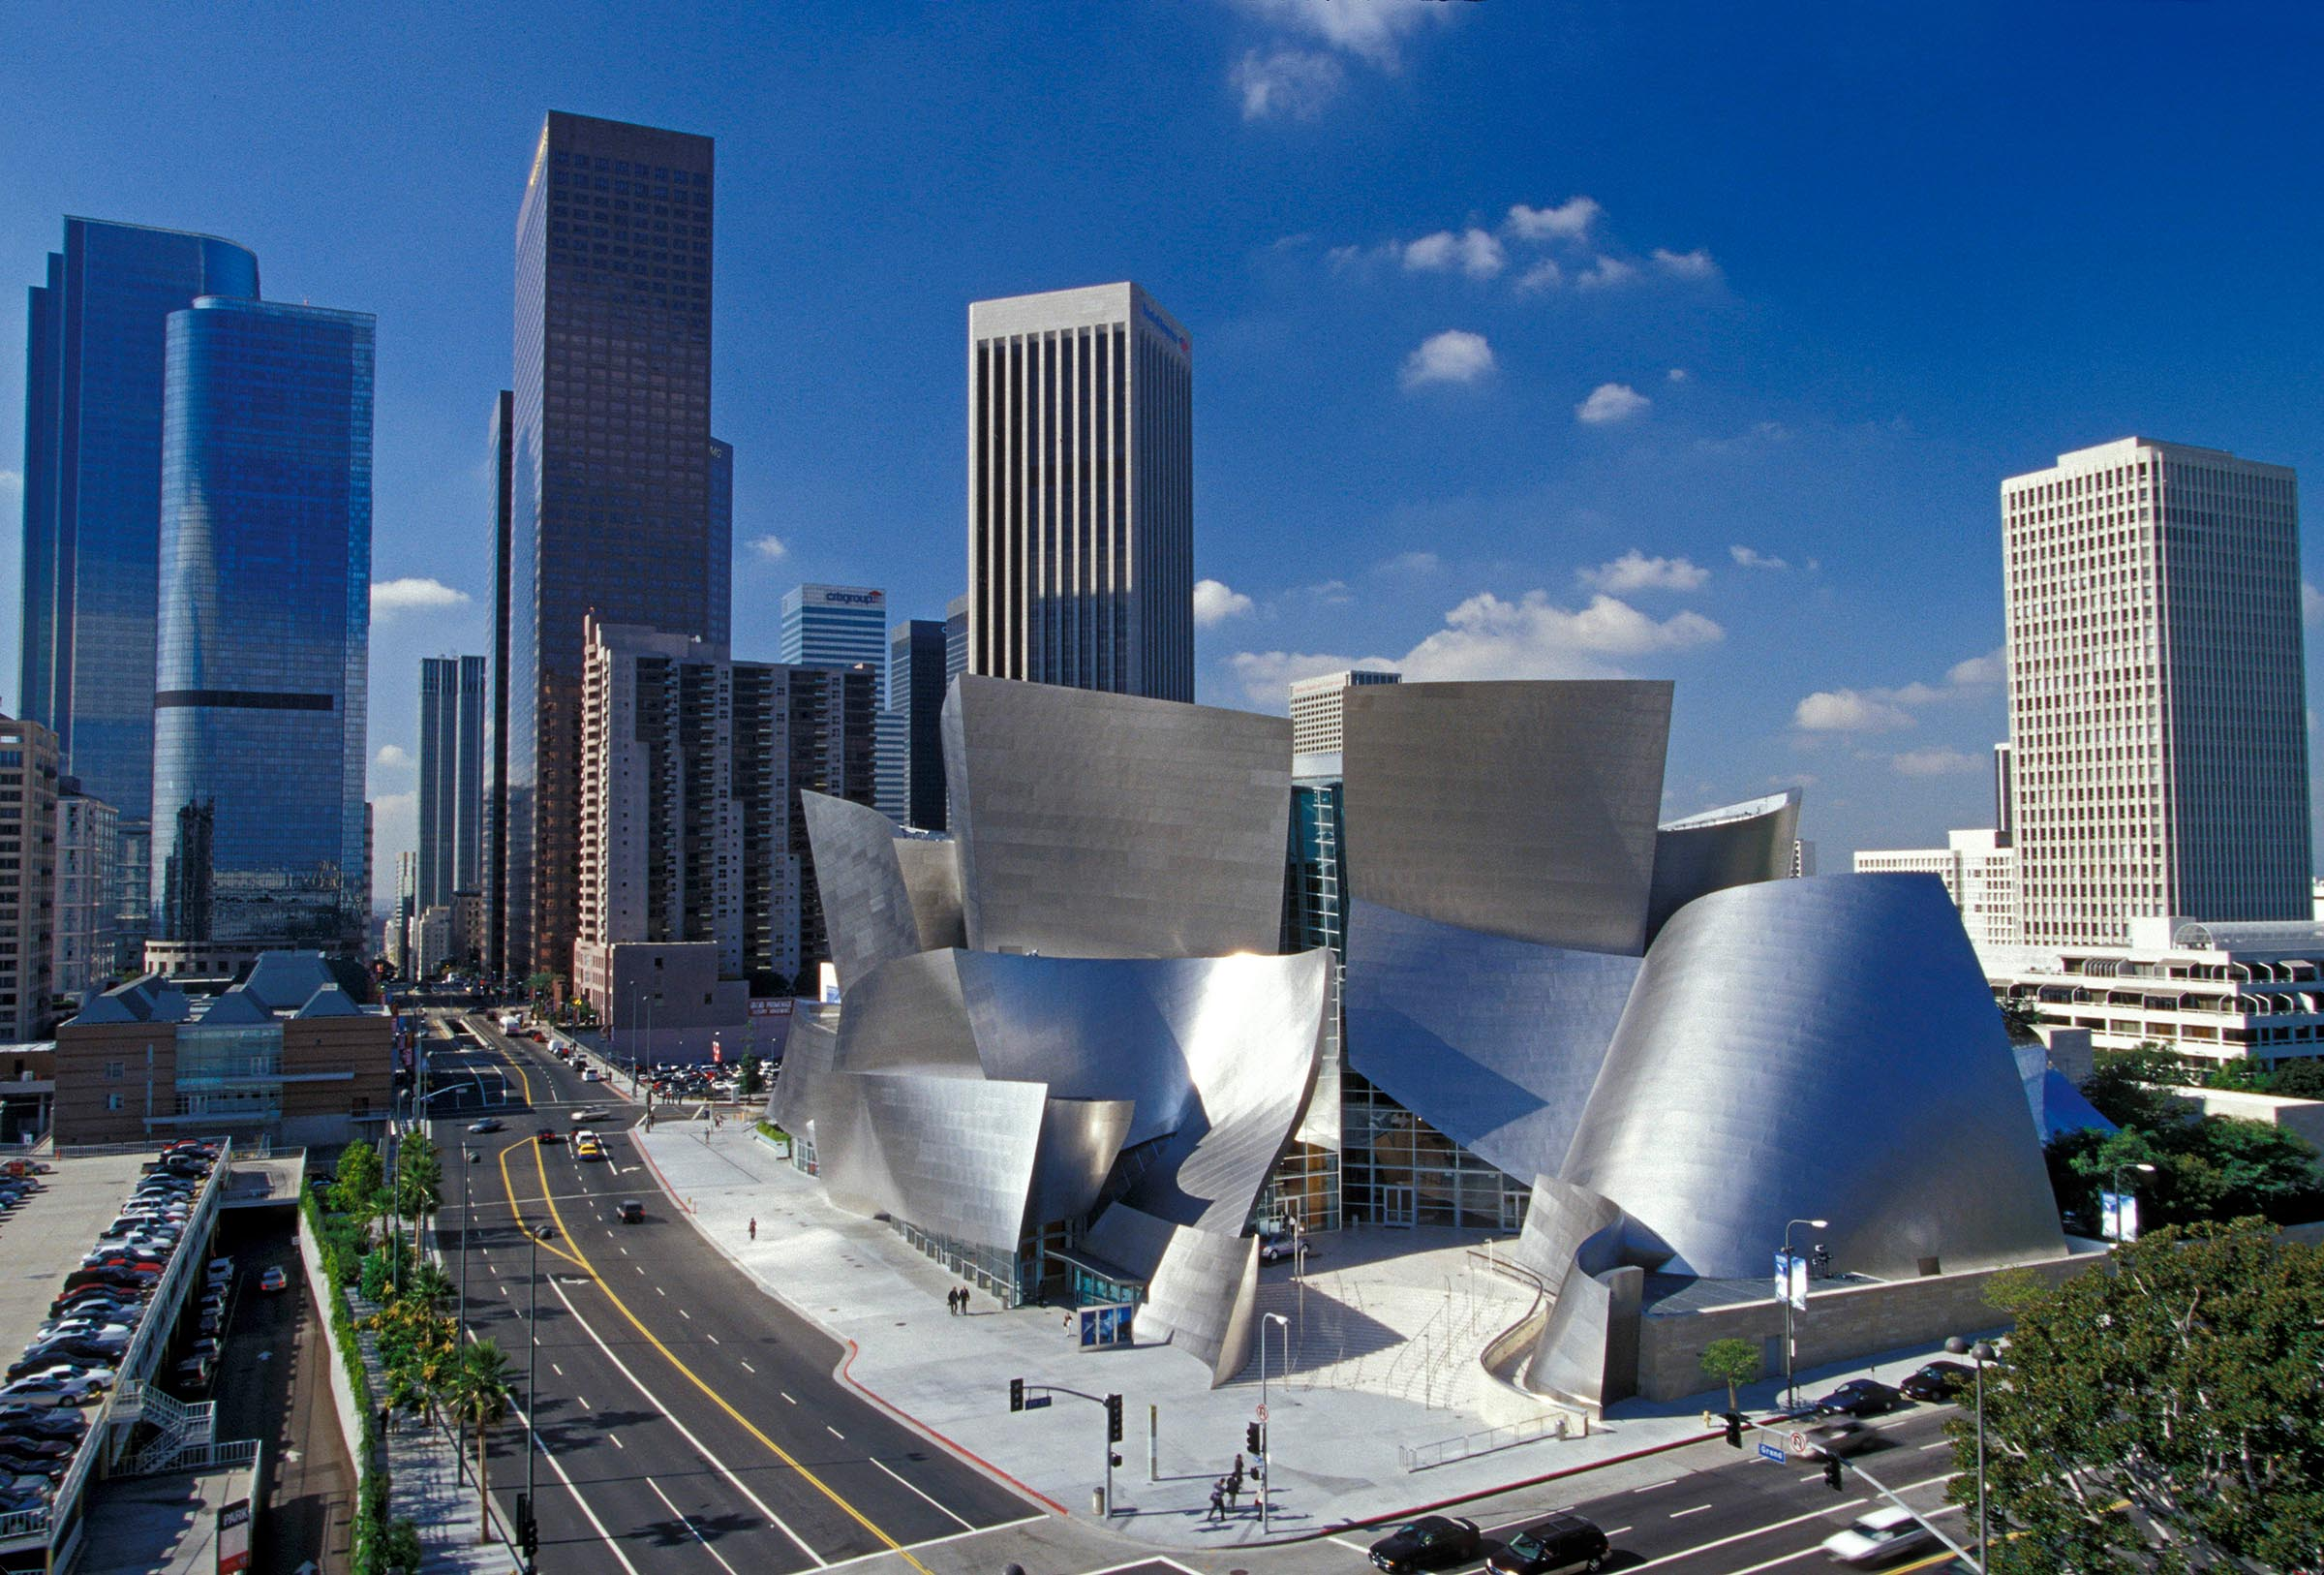 Image provided by Gehry Partners, LLP